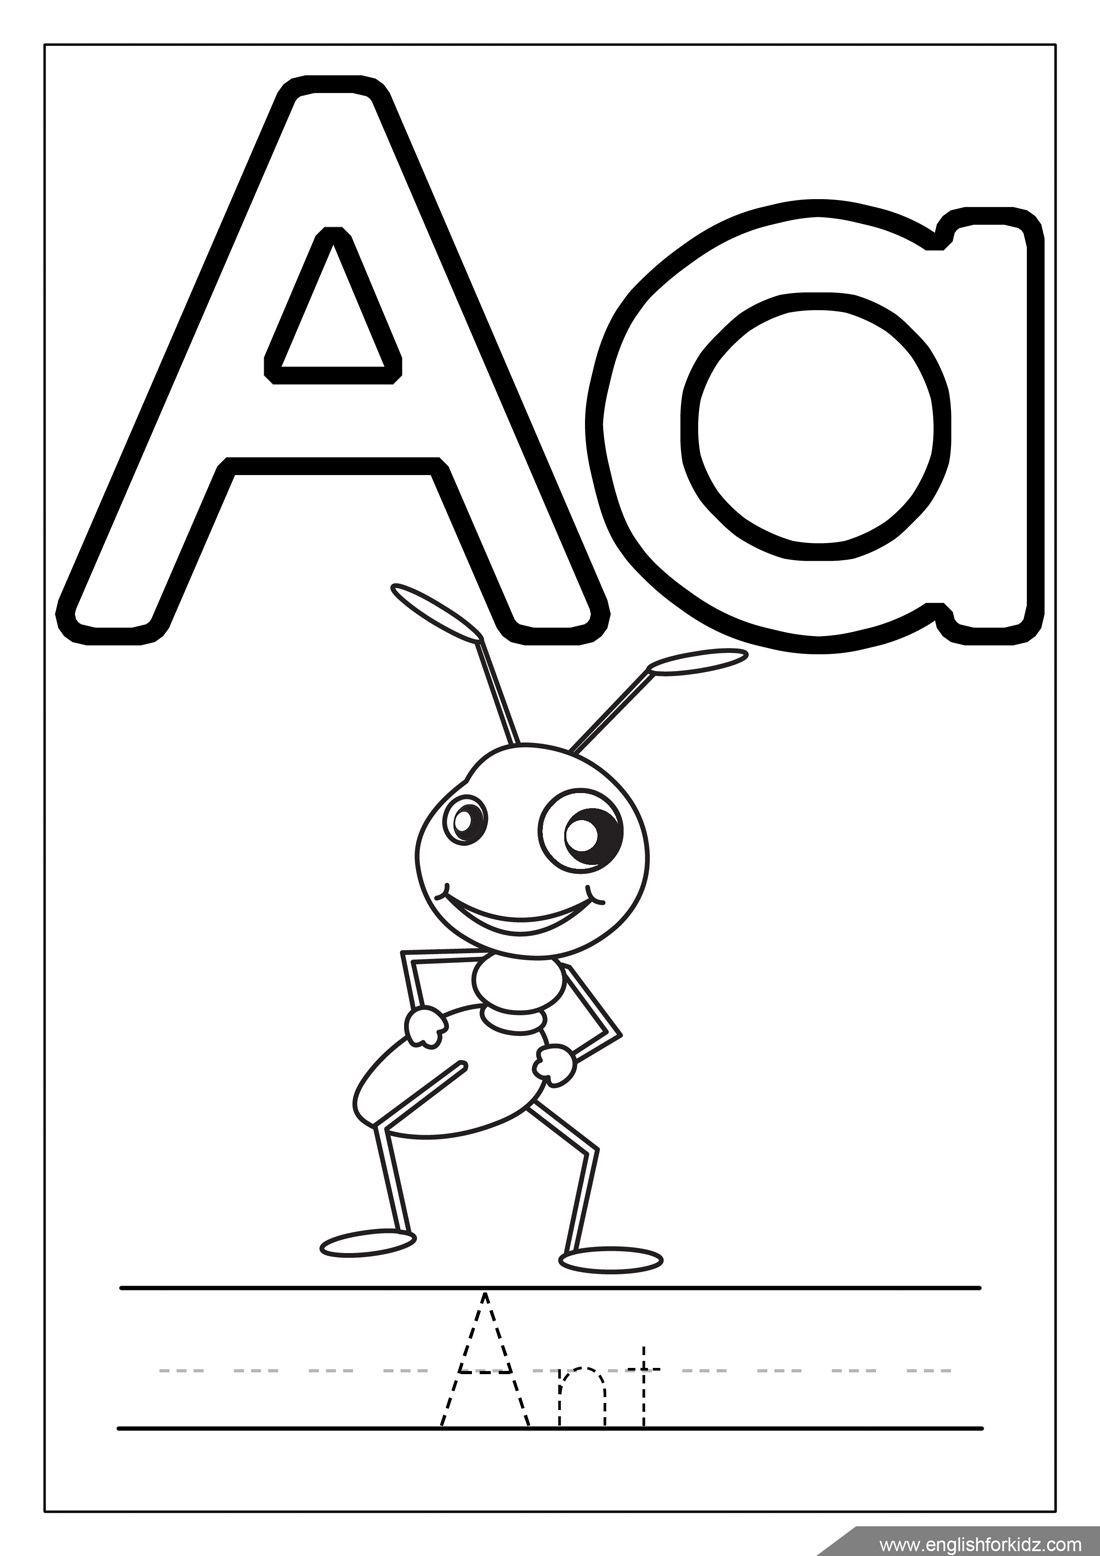 Englishforkidzcom Coloring Pages Tracing Practice Phonics Letter A Coloring Pages Alphabet Coloring Pages Alphabet Coloring